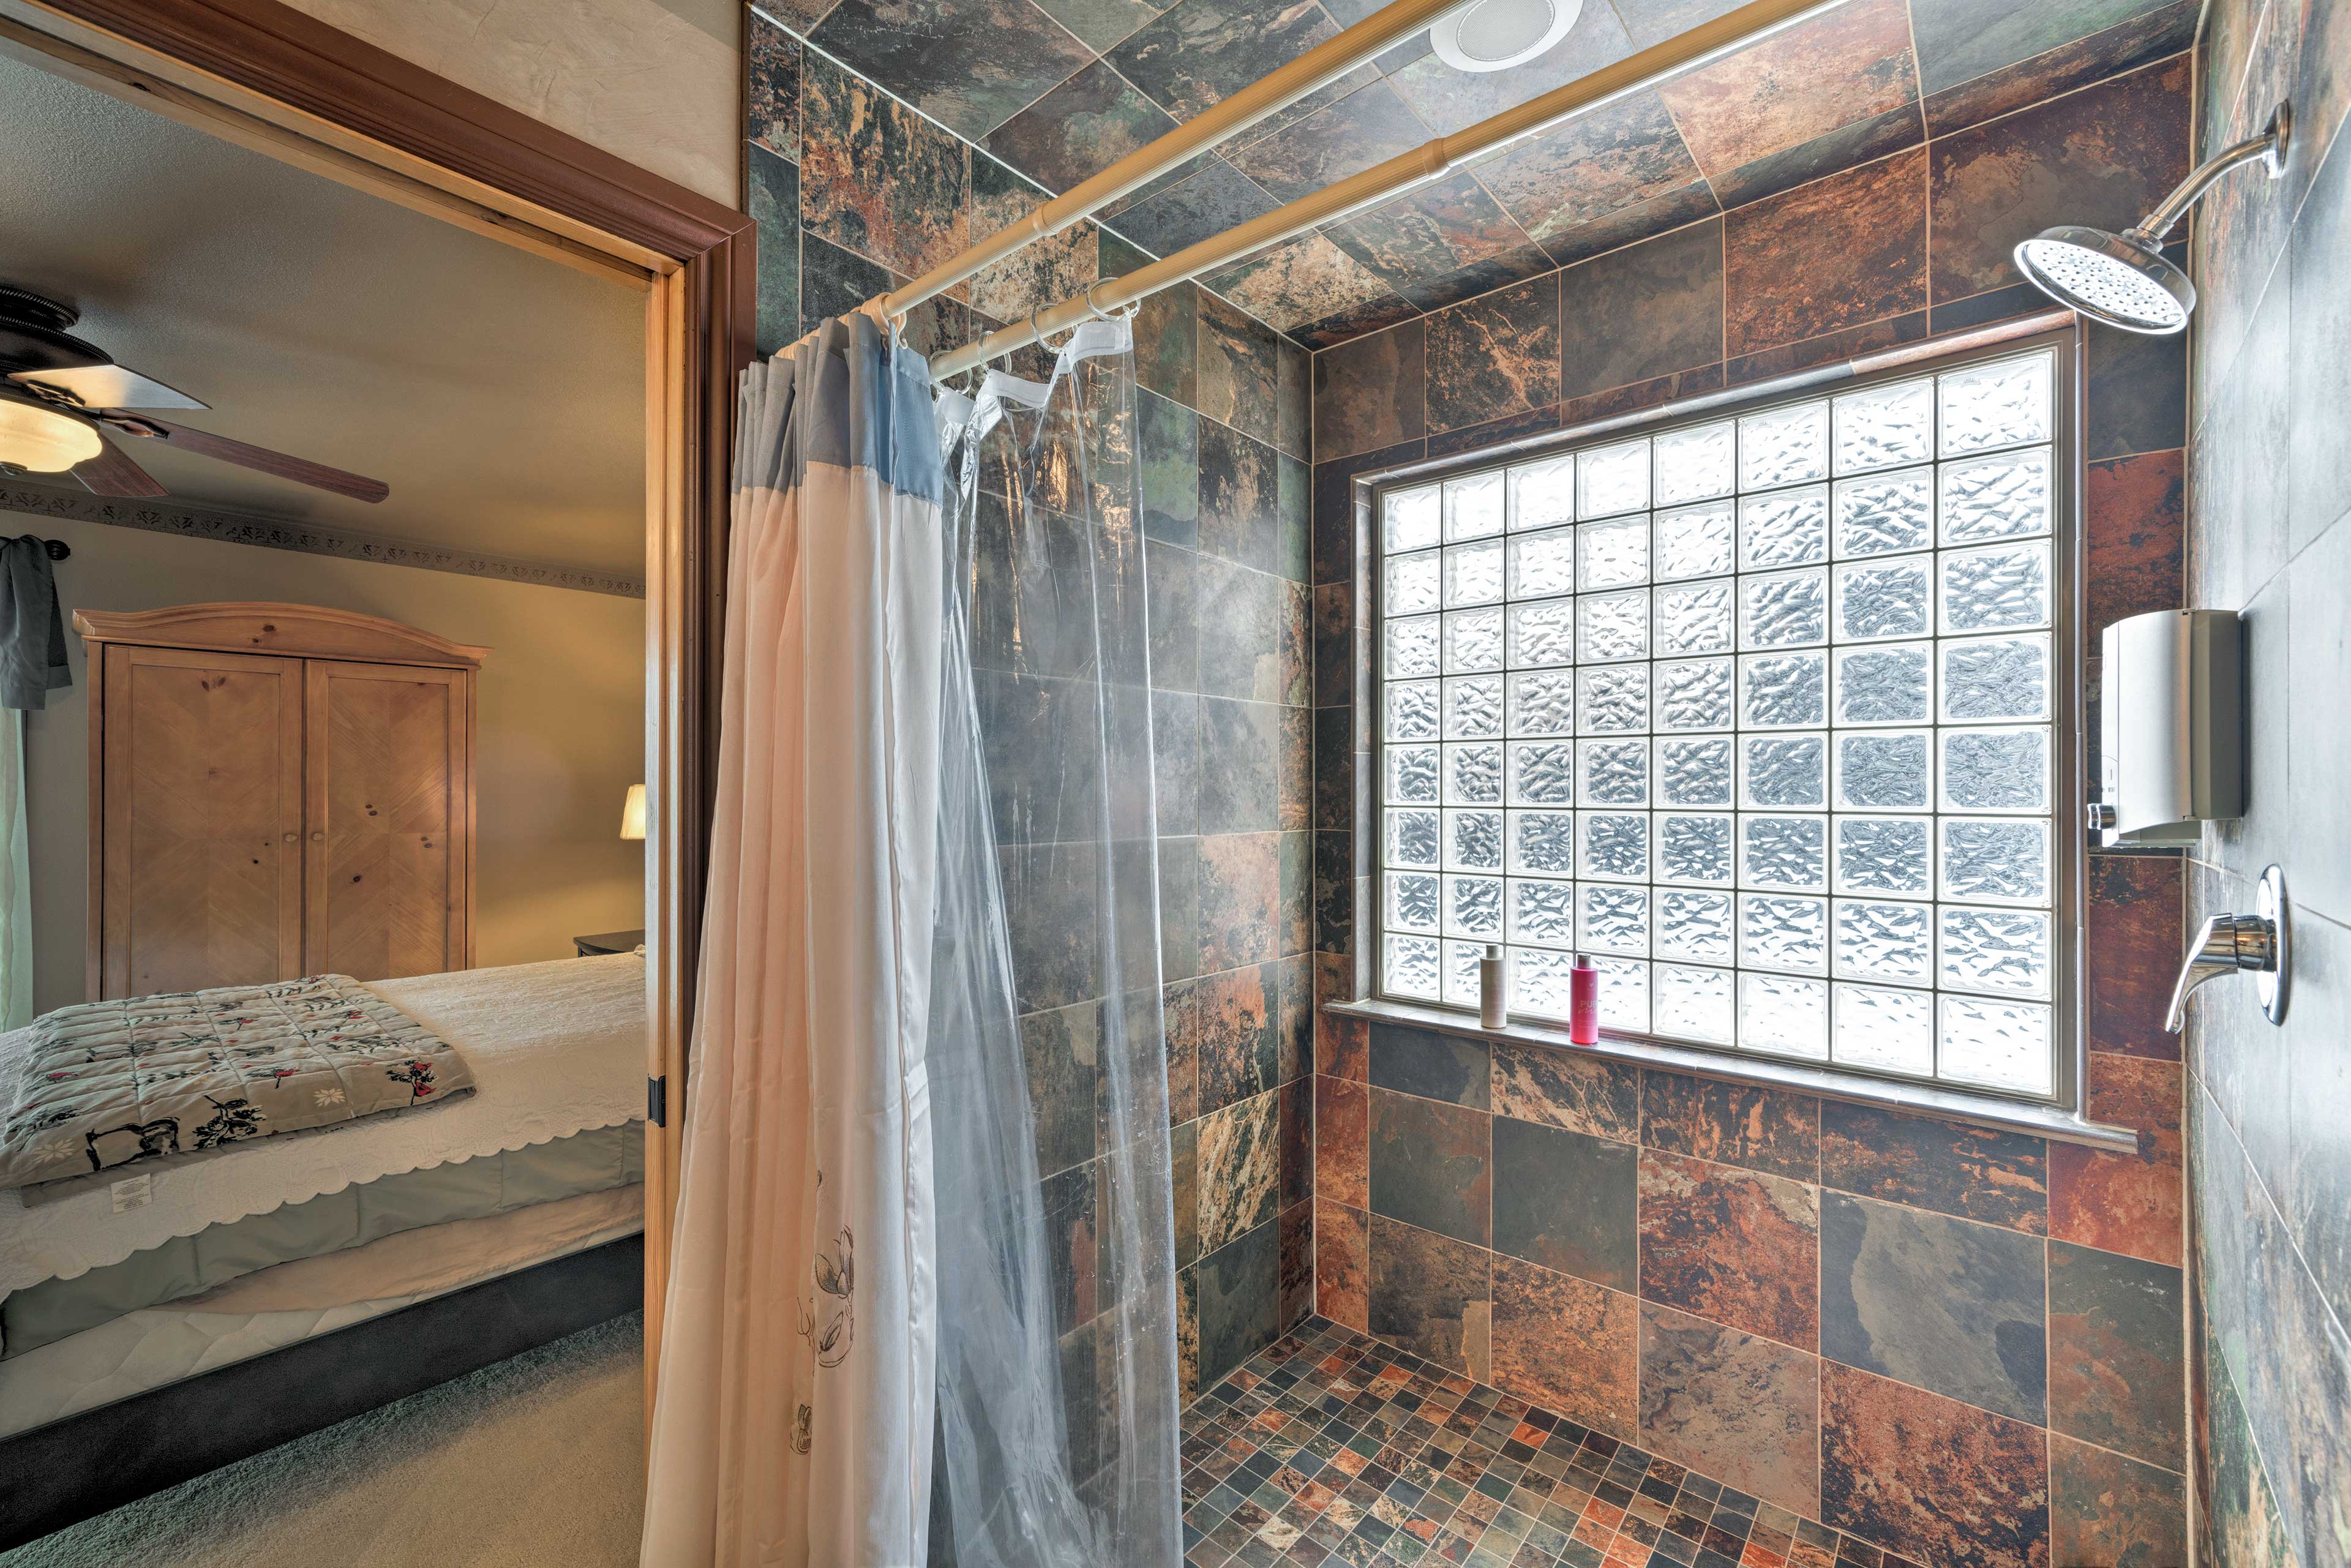 Hop in the walk-in shower to rinse off after a day on the slopes.